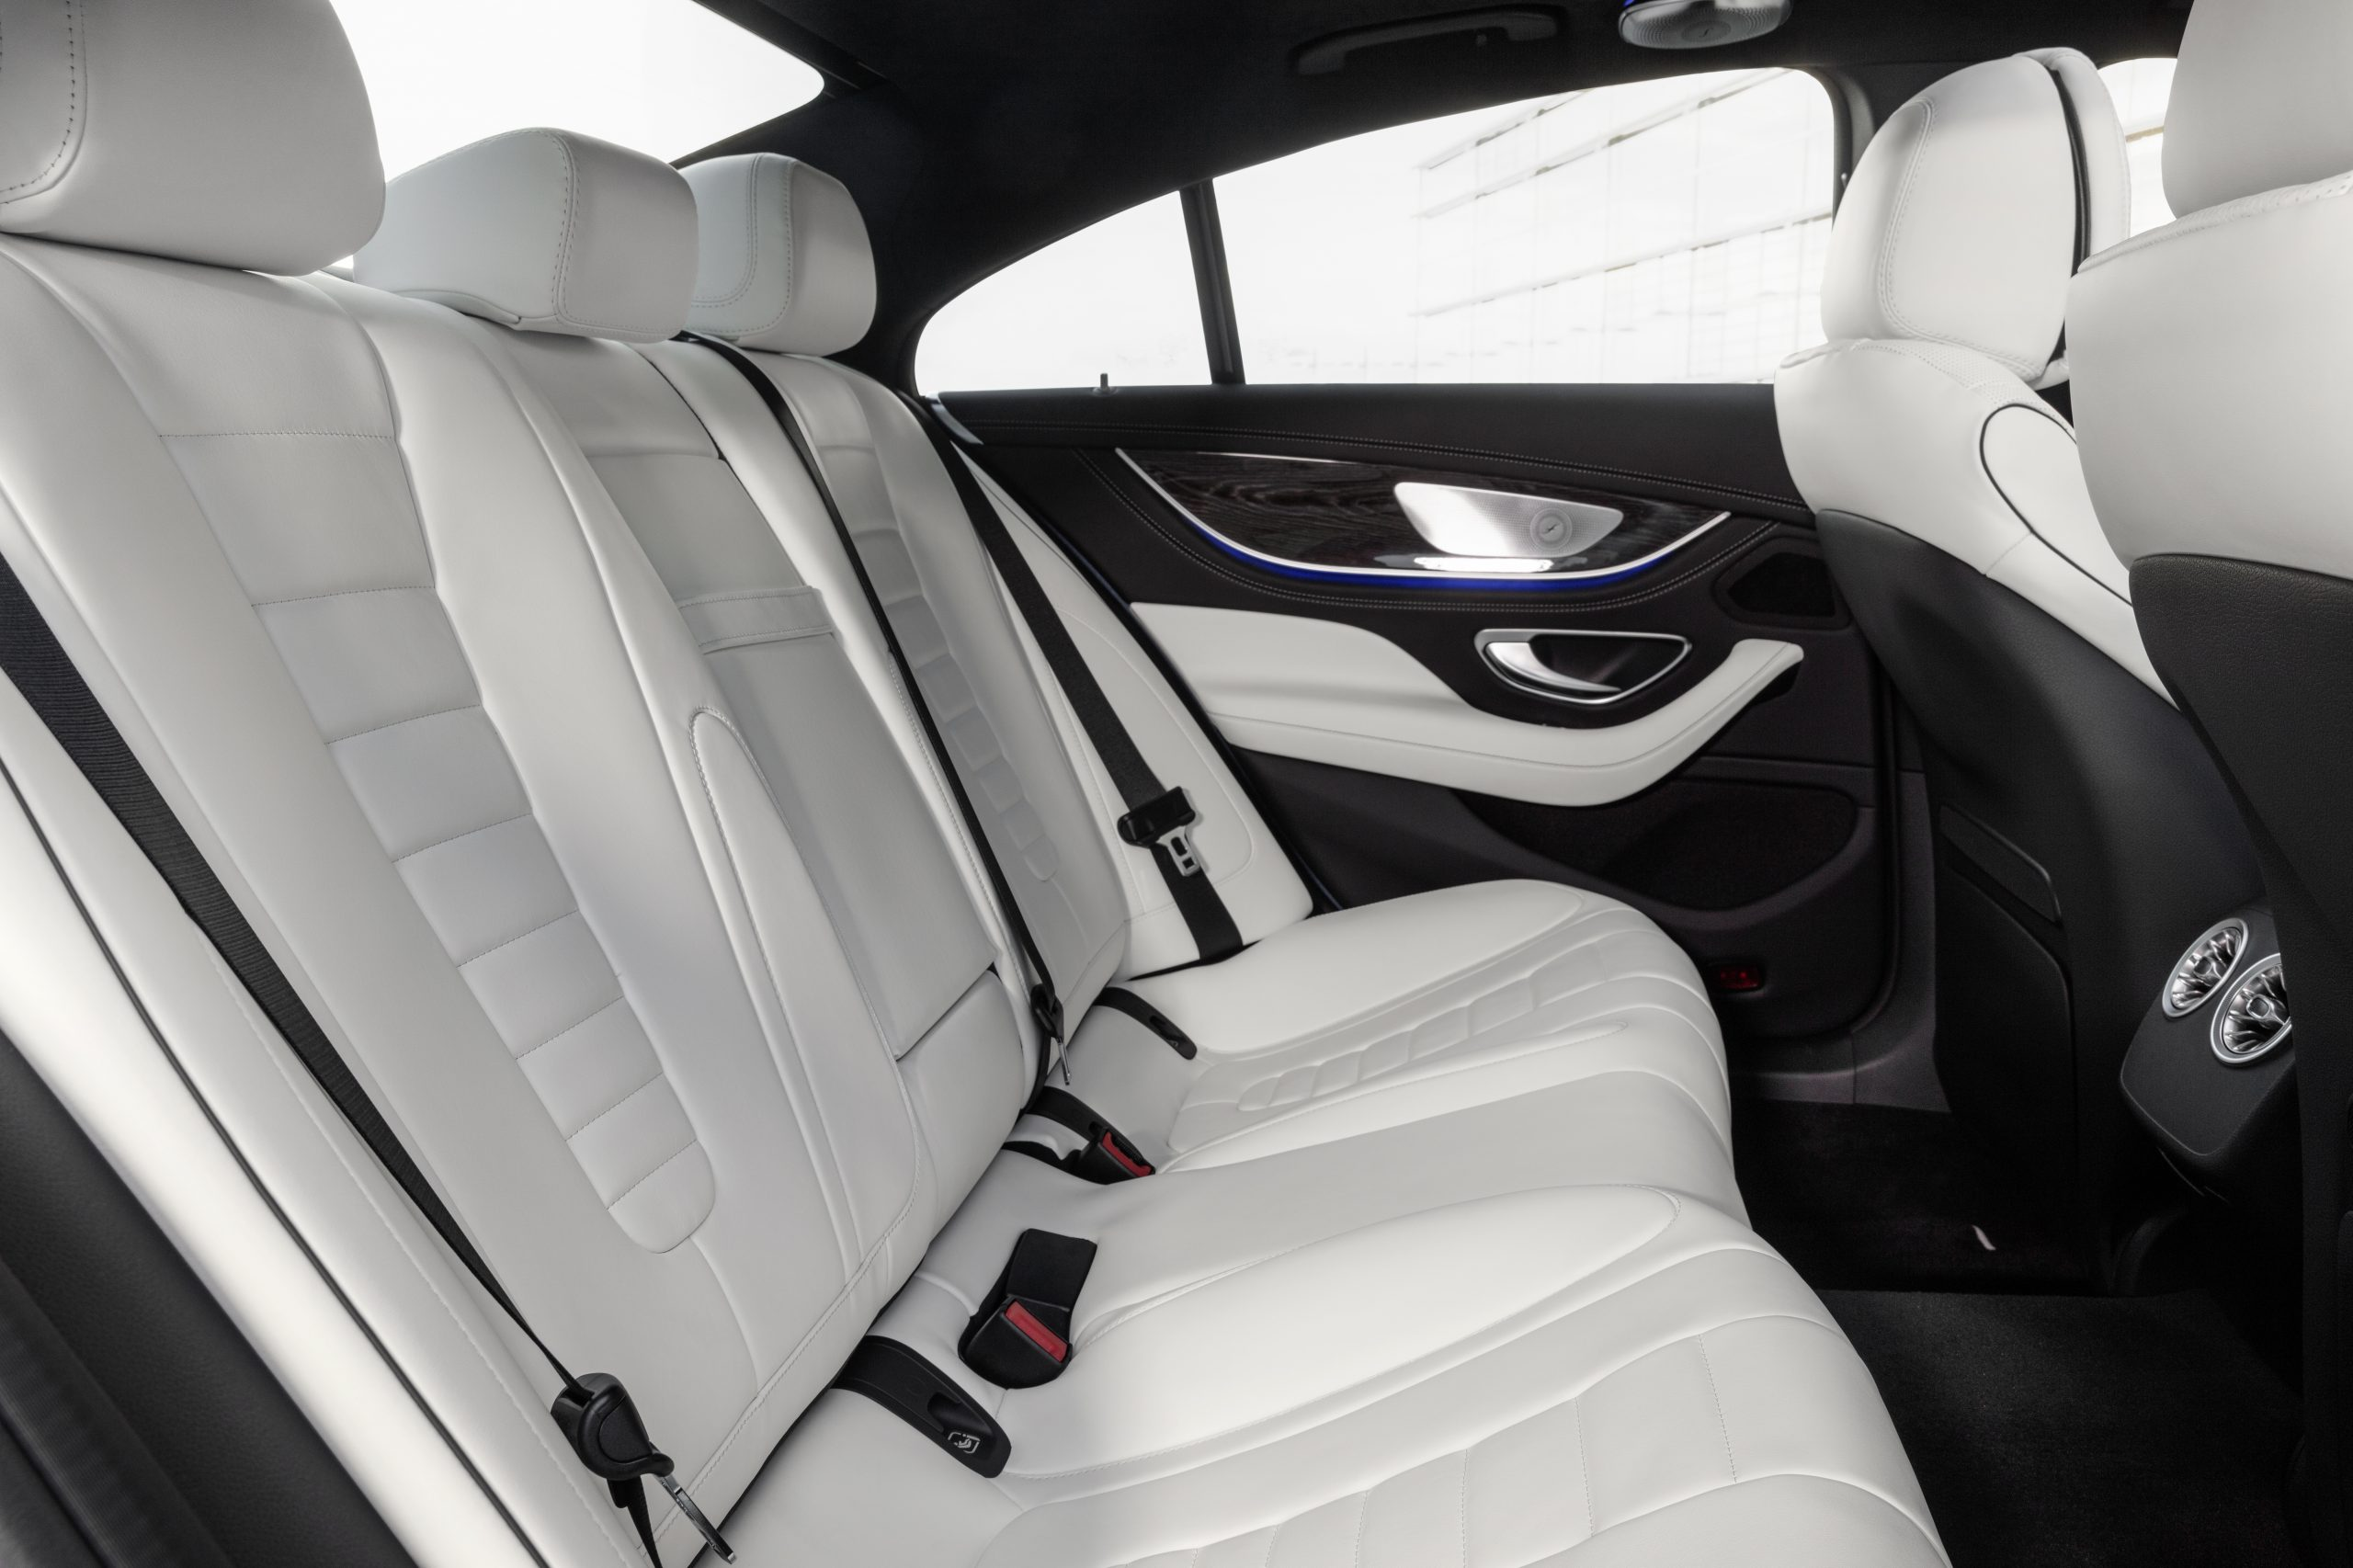 2021 Mercedes-Benz CLS 450 4Matic Coupé interior rear seat